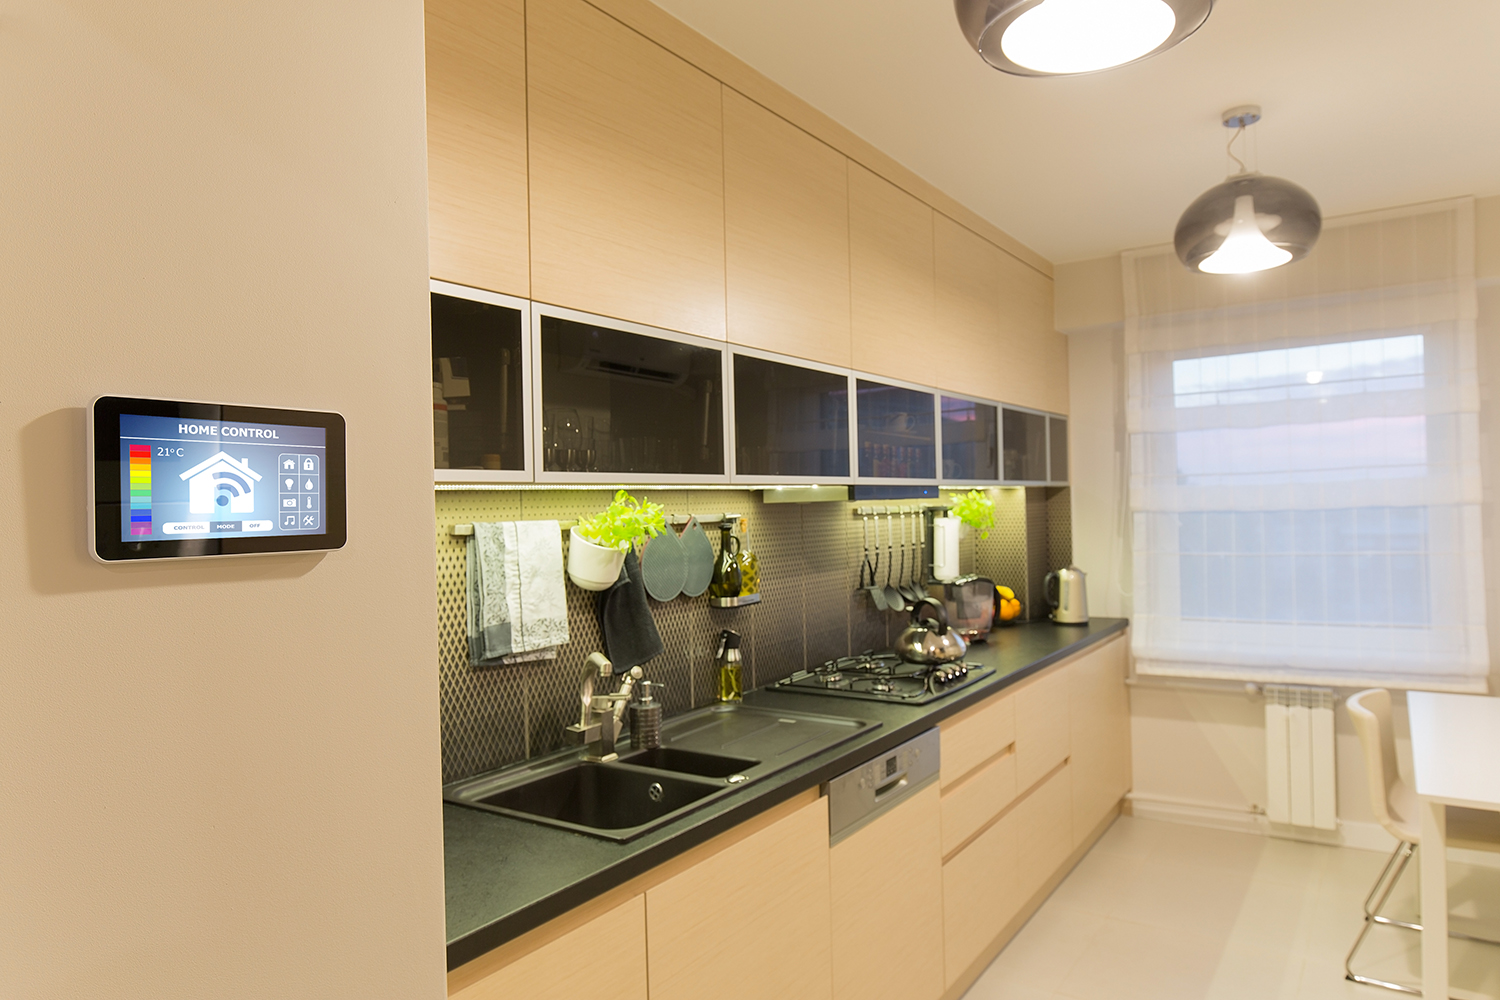 smart-home-control-panels-kitchen.jpg